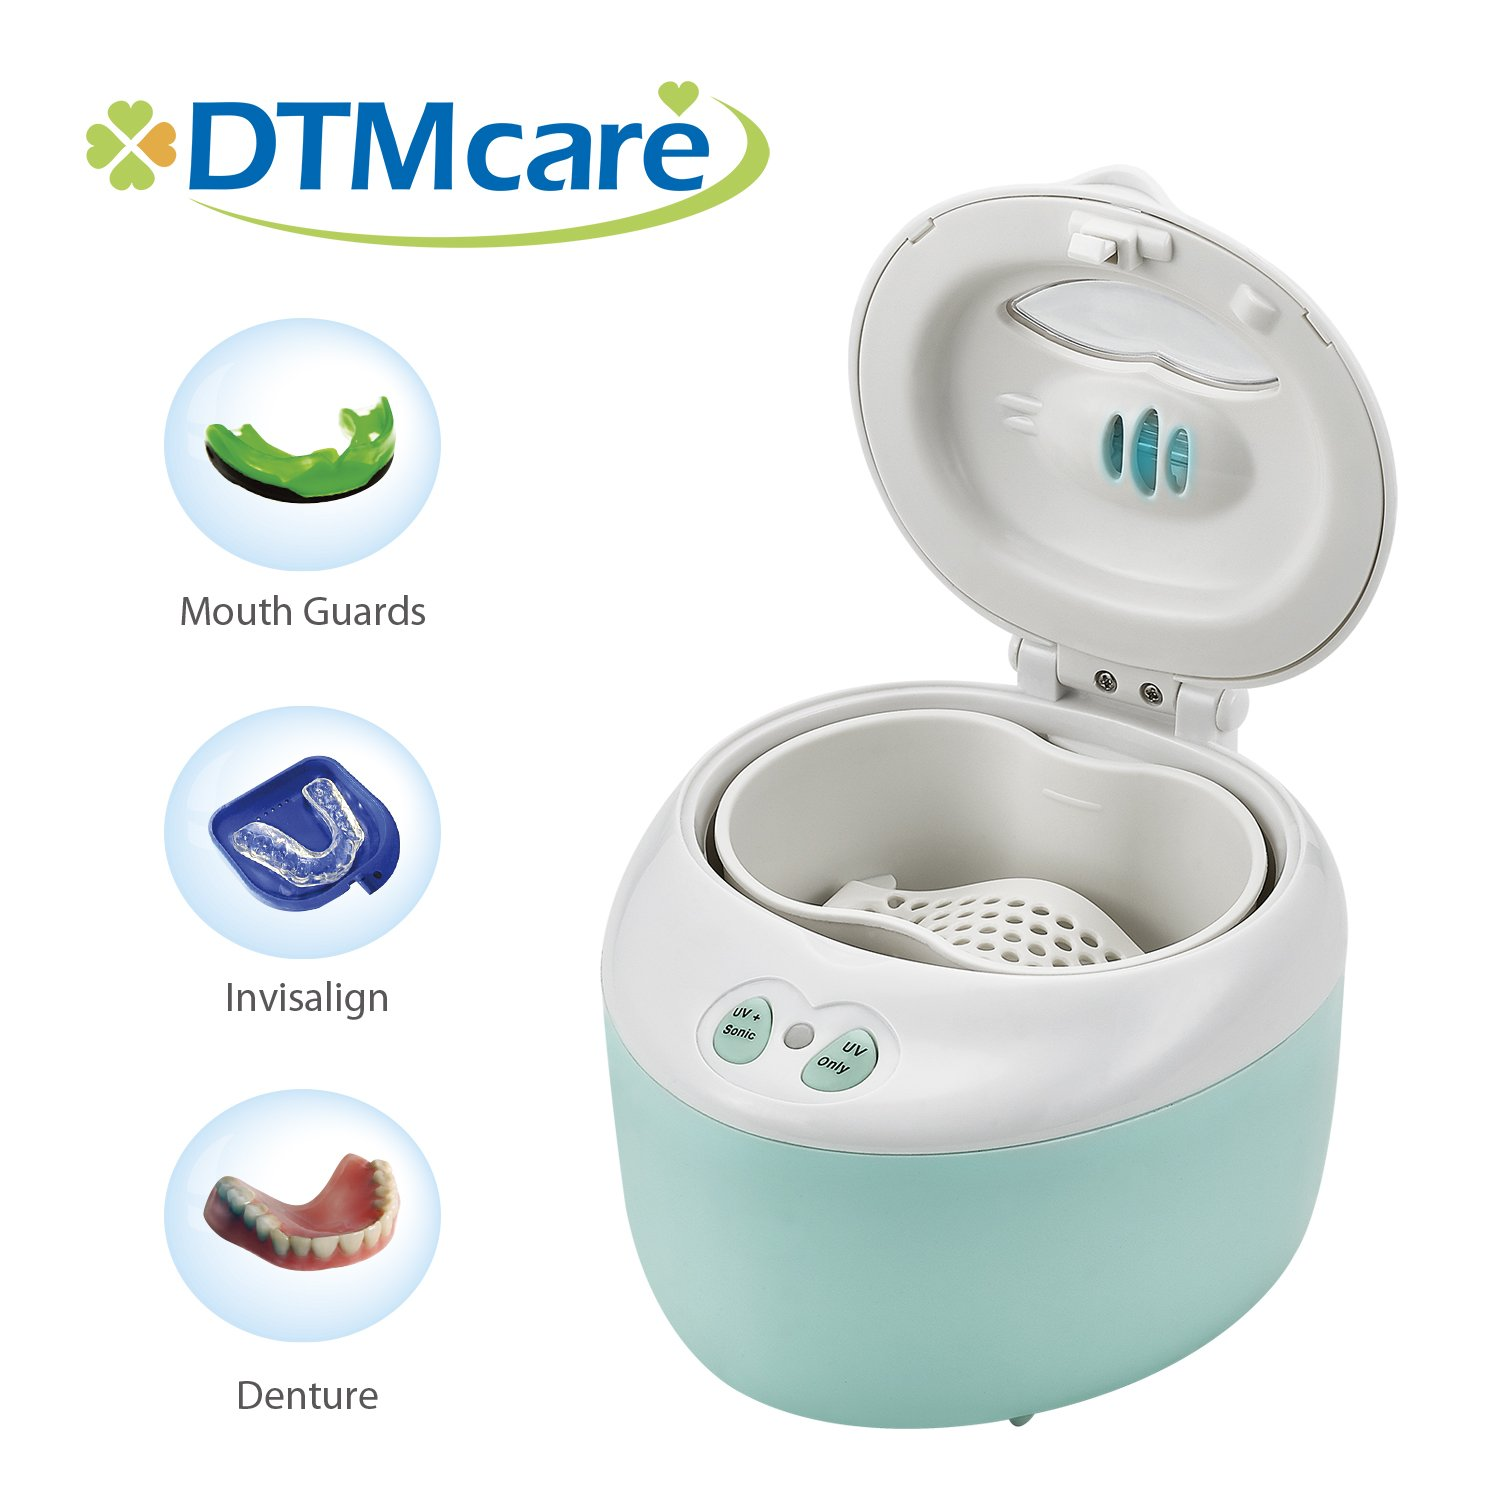 DTMCare Denture, Dental Cleaner UV (Blue color) Ultrasonic Sterilization for Denture, Mouth Guard, Invisalign, Retainer. Snore Guard Sleep Retainer. FDA Registered/CE Medical Approved. by DTMCare DigiMax UP-321